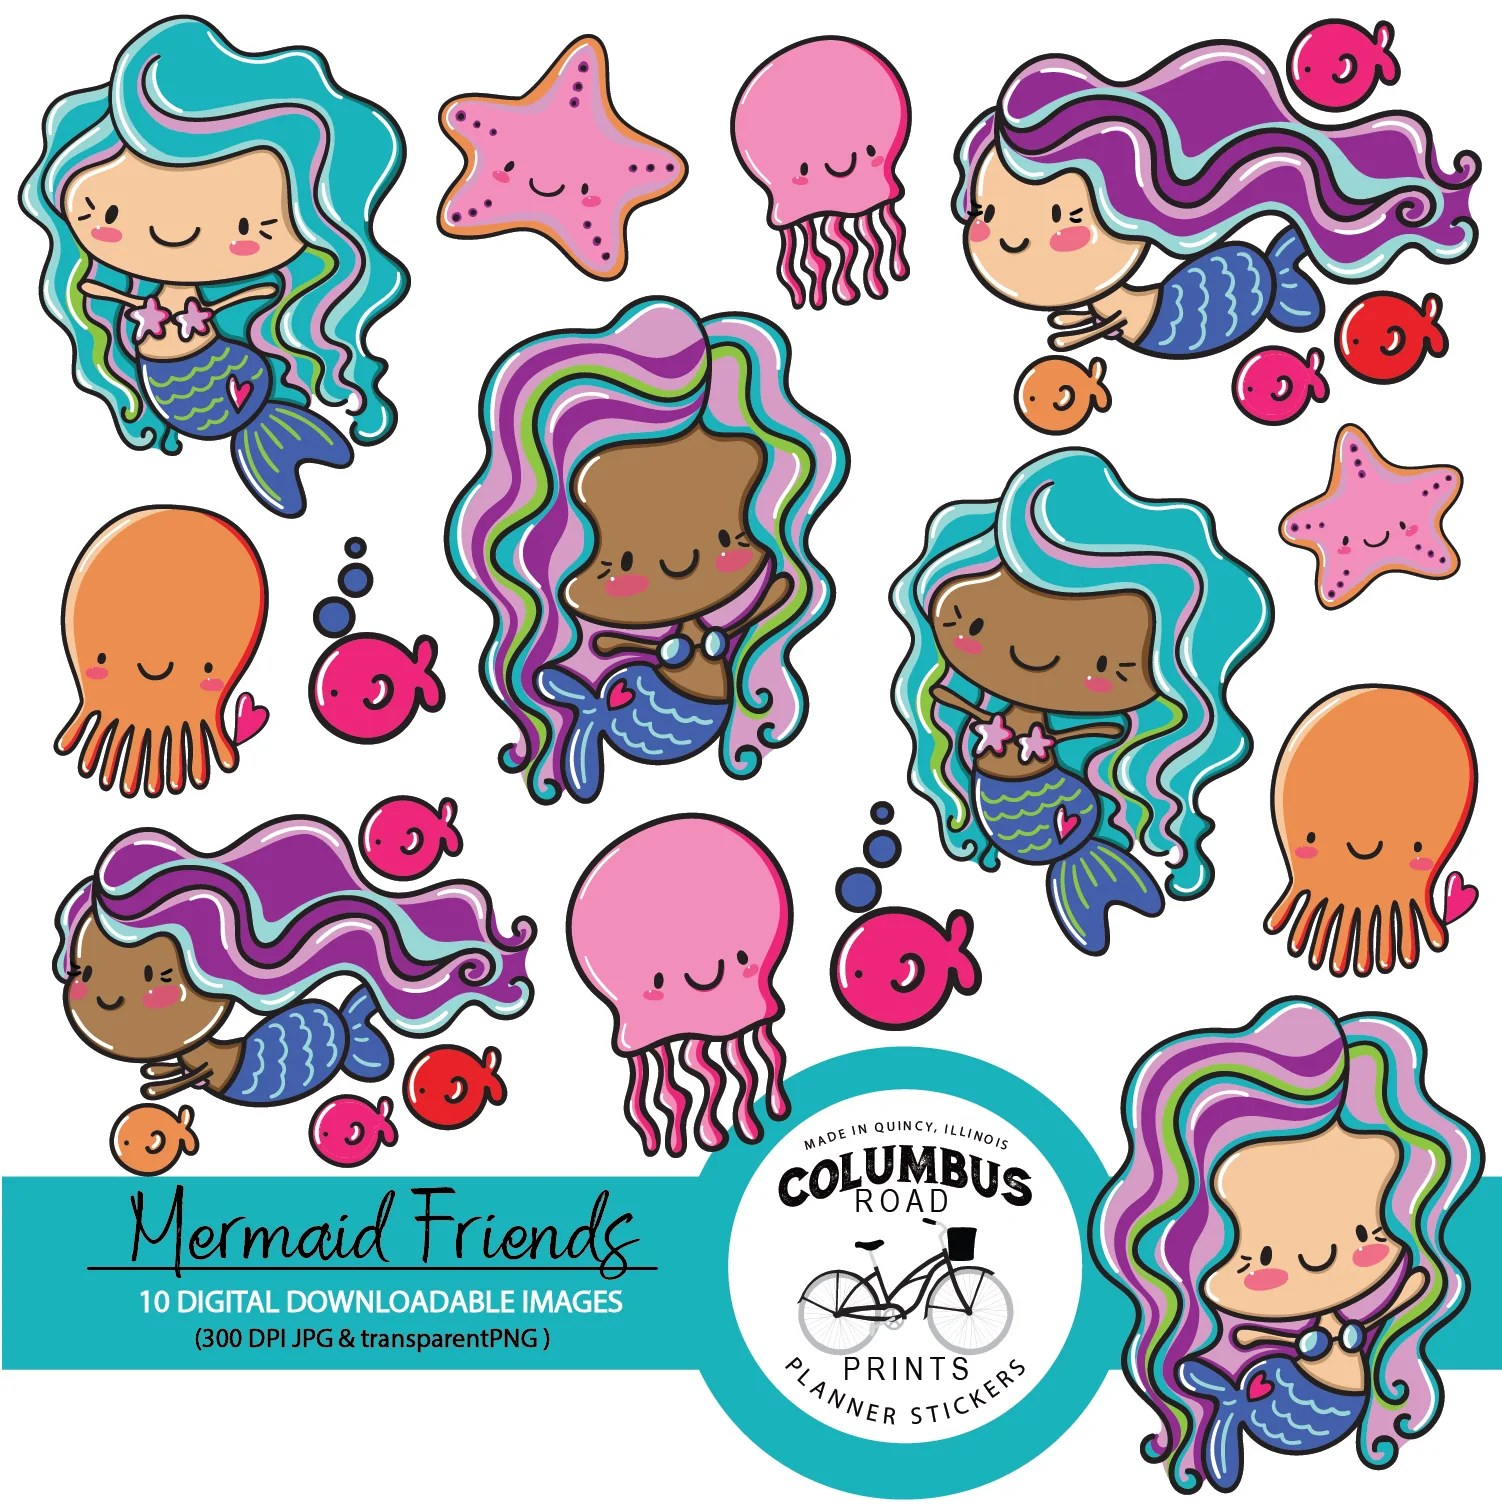 digital clipart mermaid friends mermaid digital downloadable clipart use for craft scrapbooking and sticker projects  [ 1502 x 1506 Pixel ]